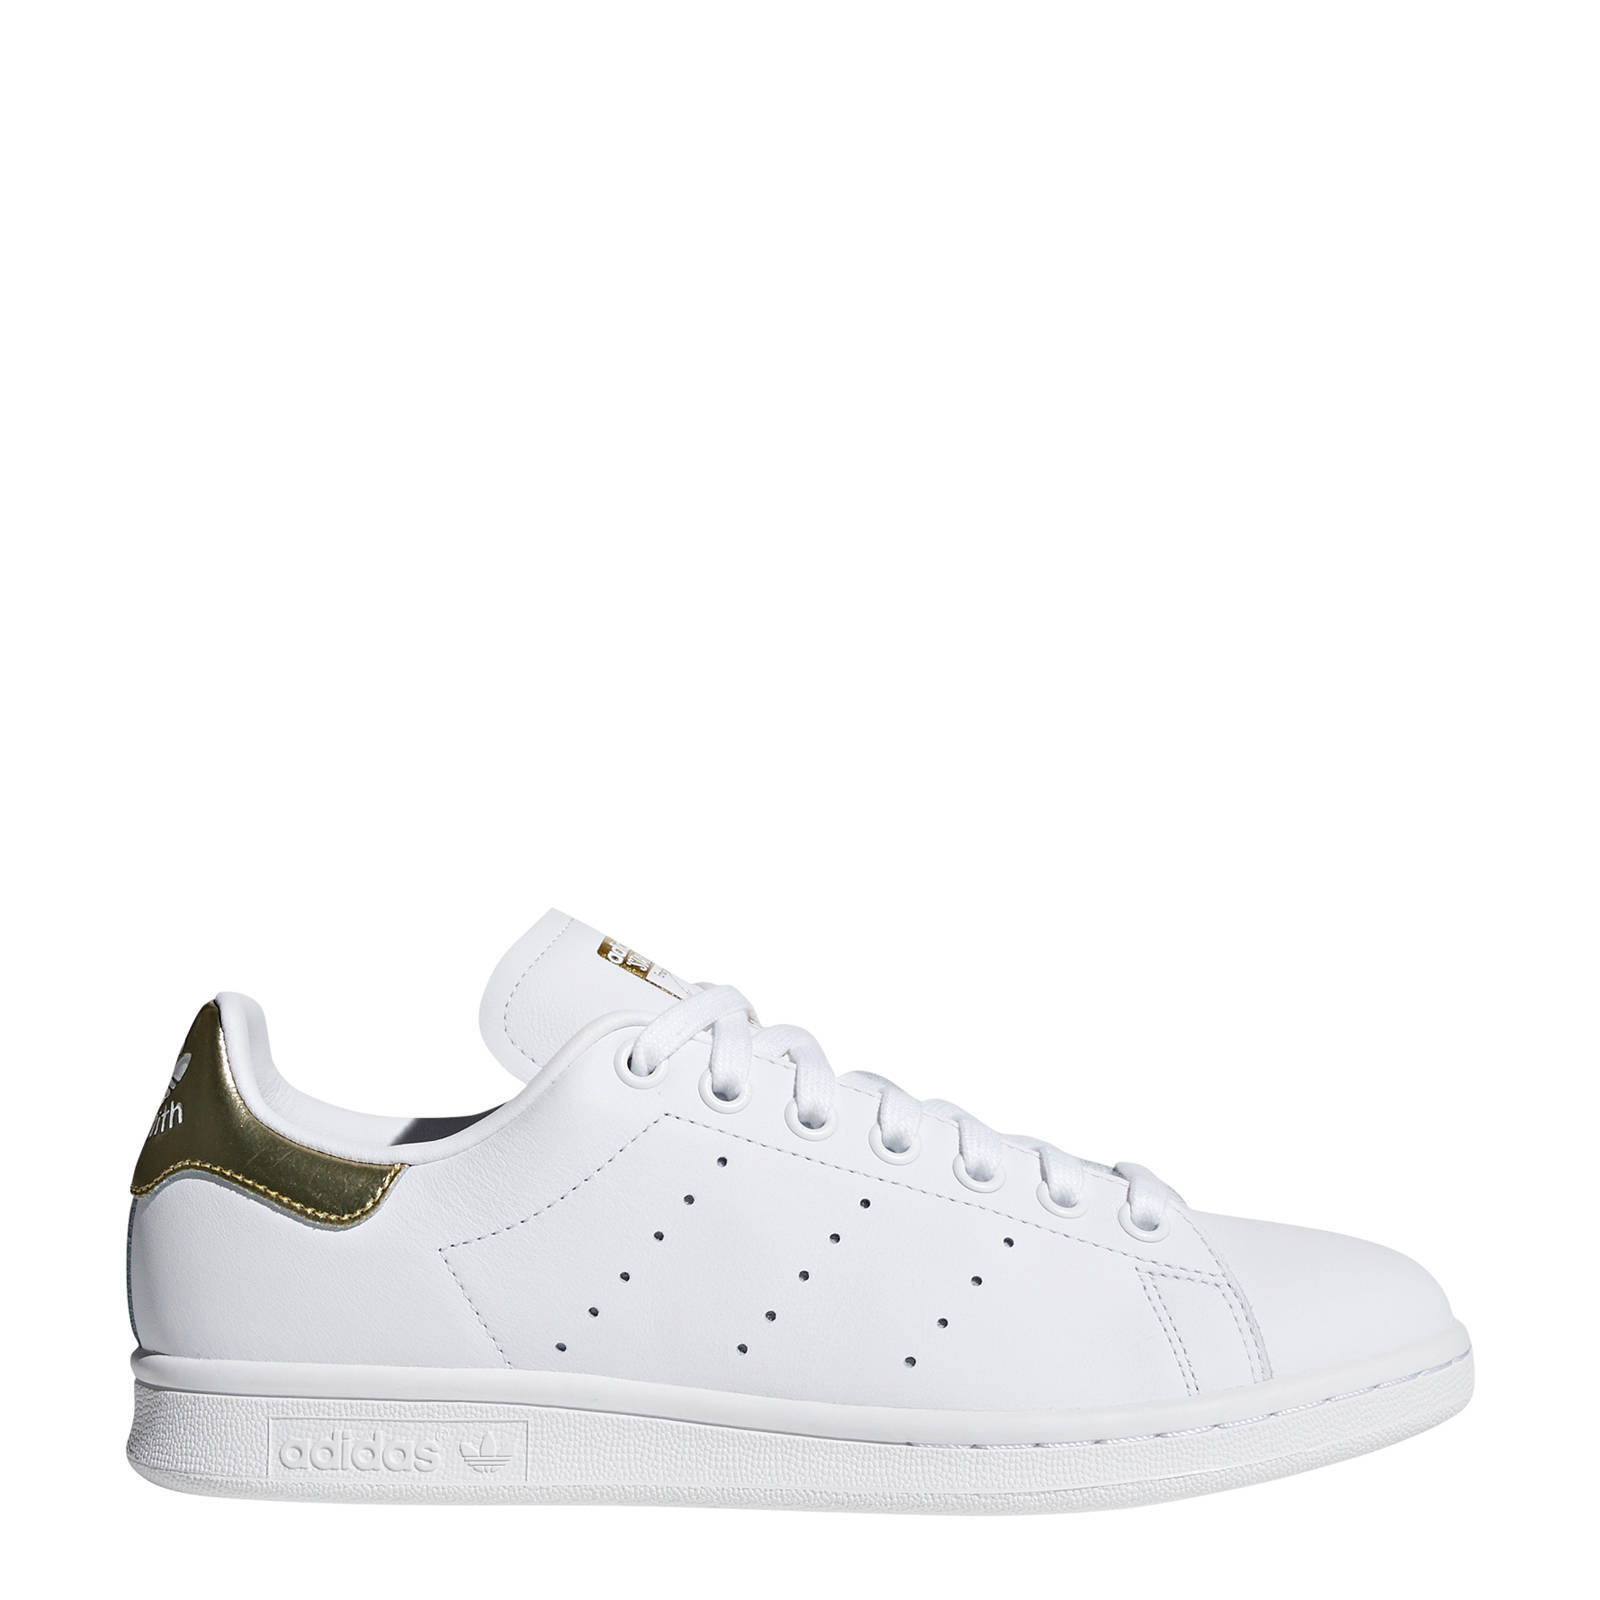 adidas Originals Stan Smith sneakers wit/goud | wehkamp